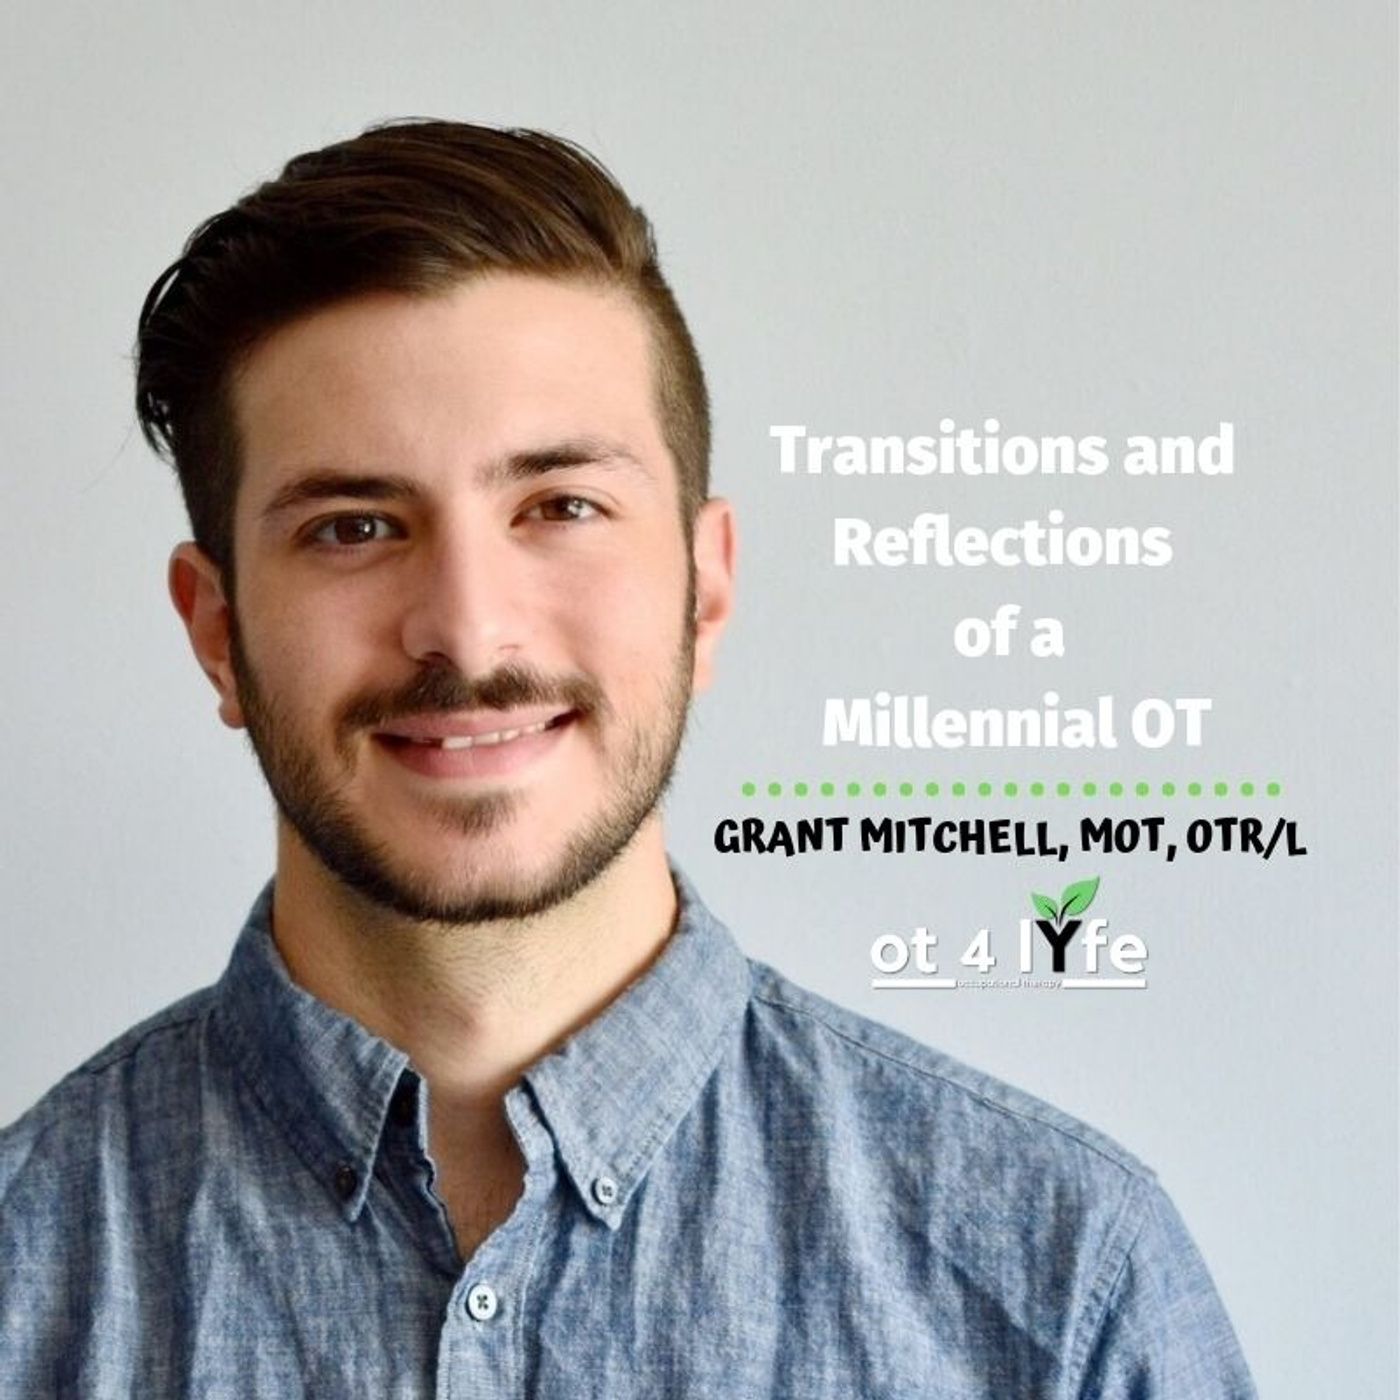 Listen to Transitions and Reflections of a Millennial OT with Grant Mitchell